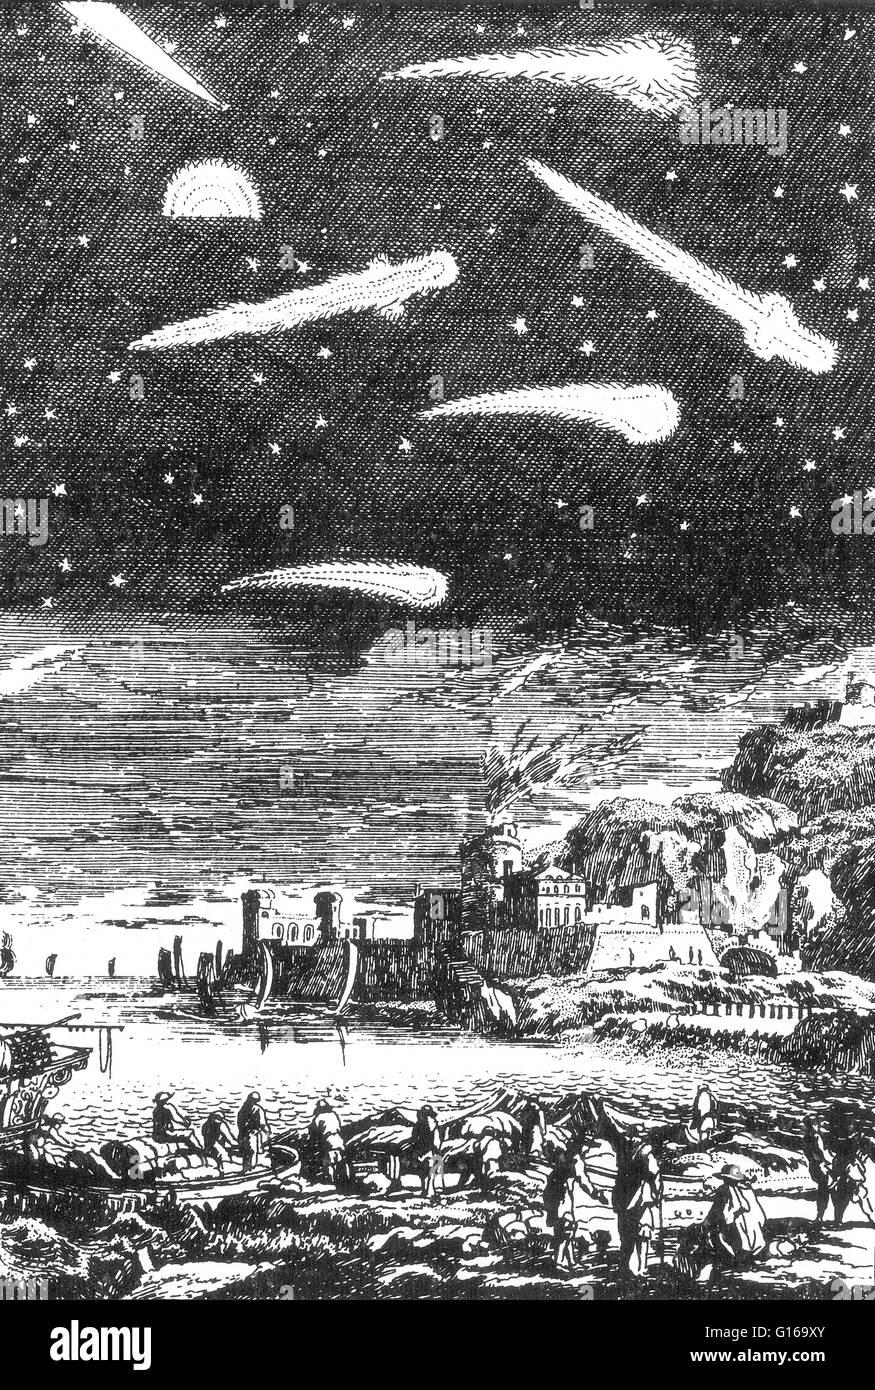 Engraving entitled: 'Calamities on Earth Associated with the Passage of Comets', from the 17th century. - Stock Image